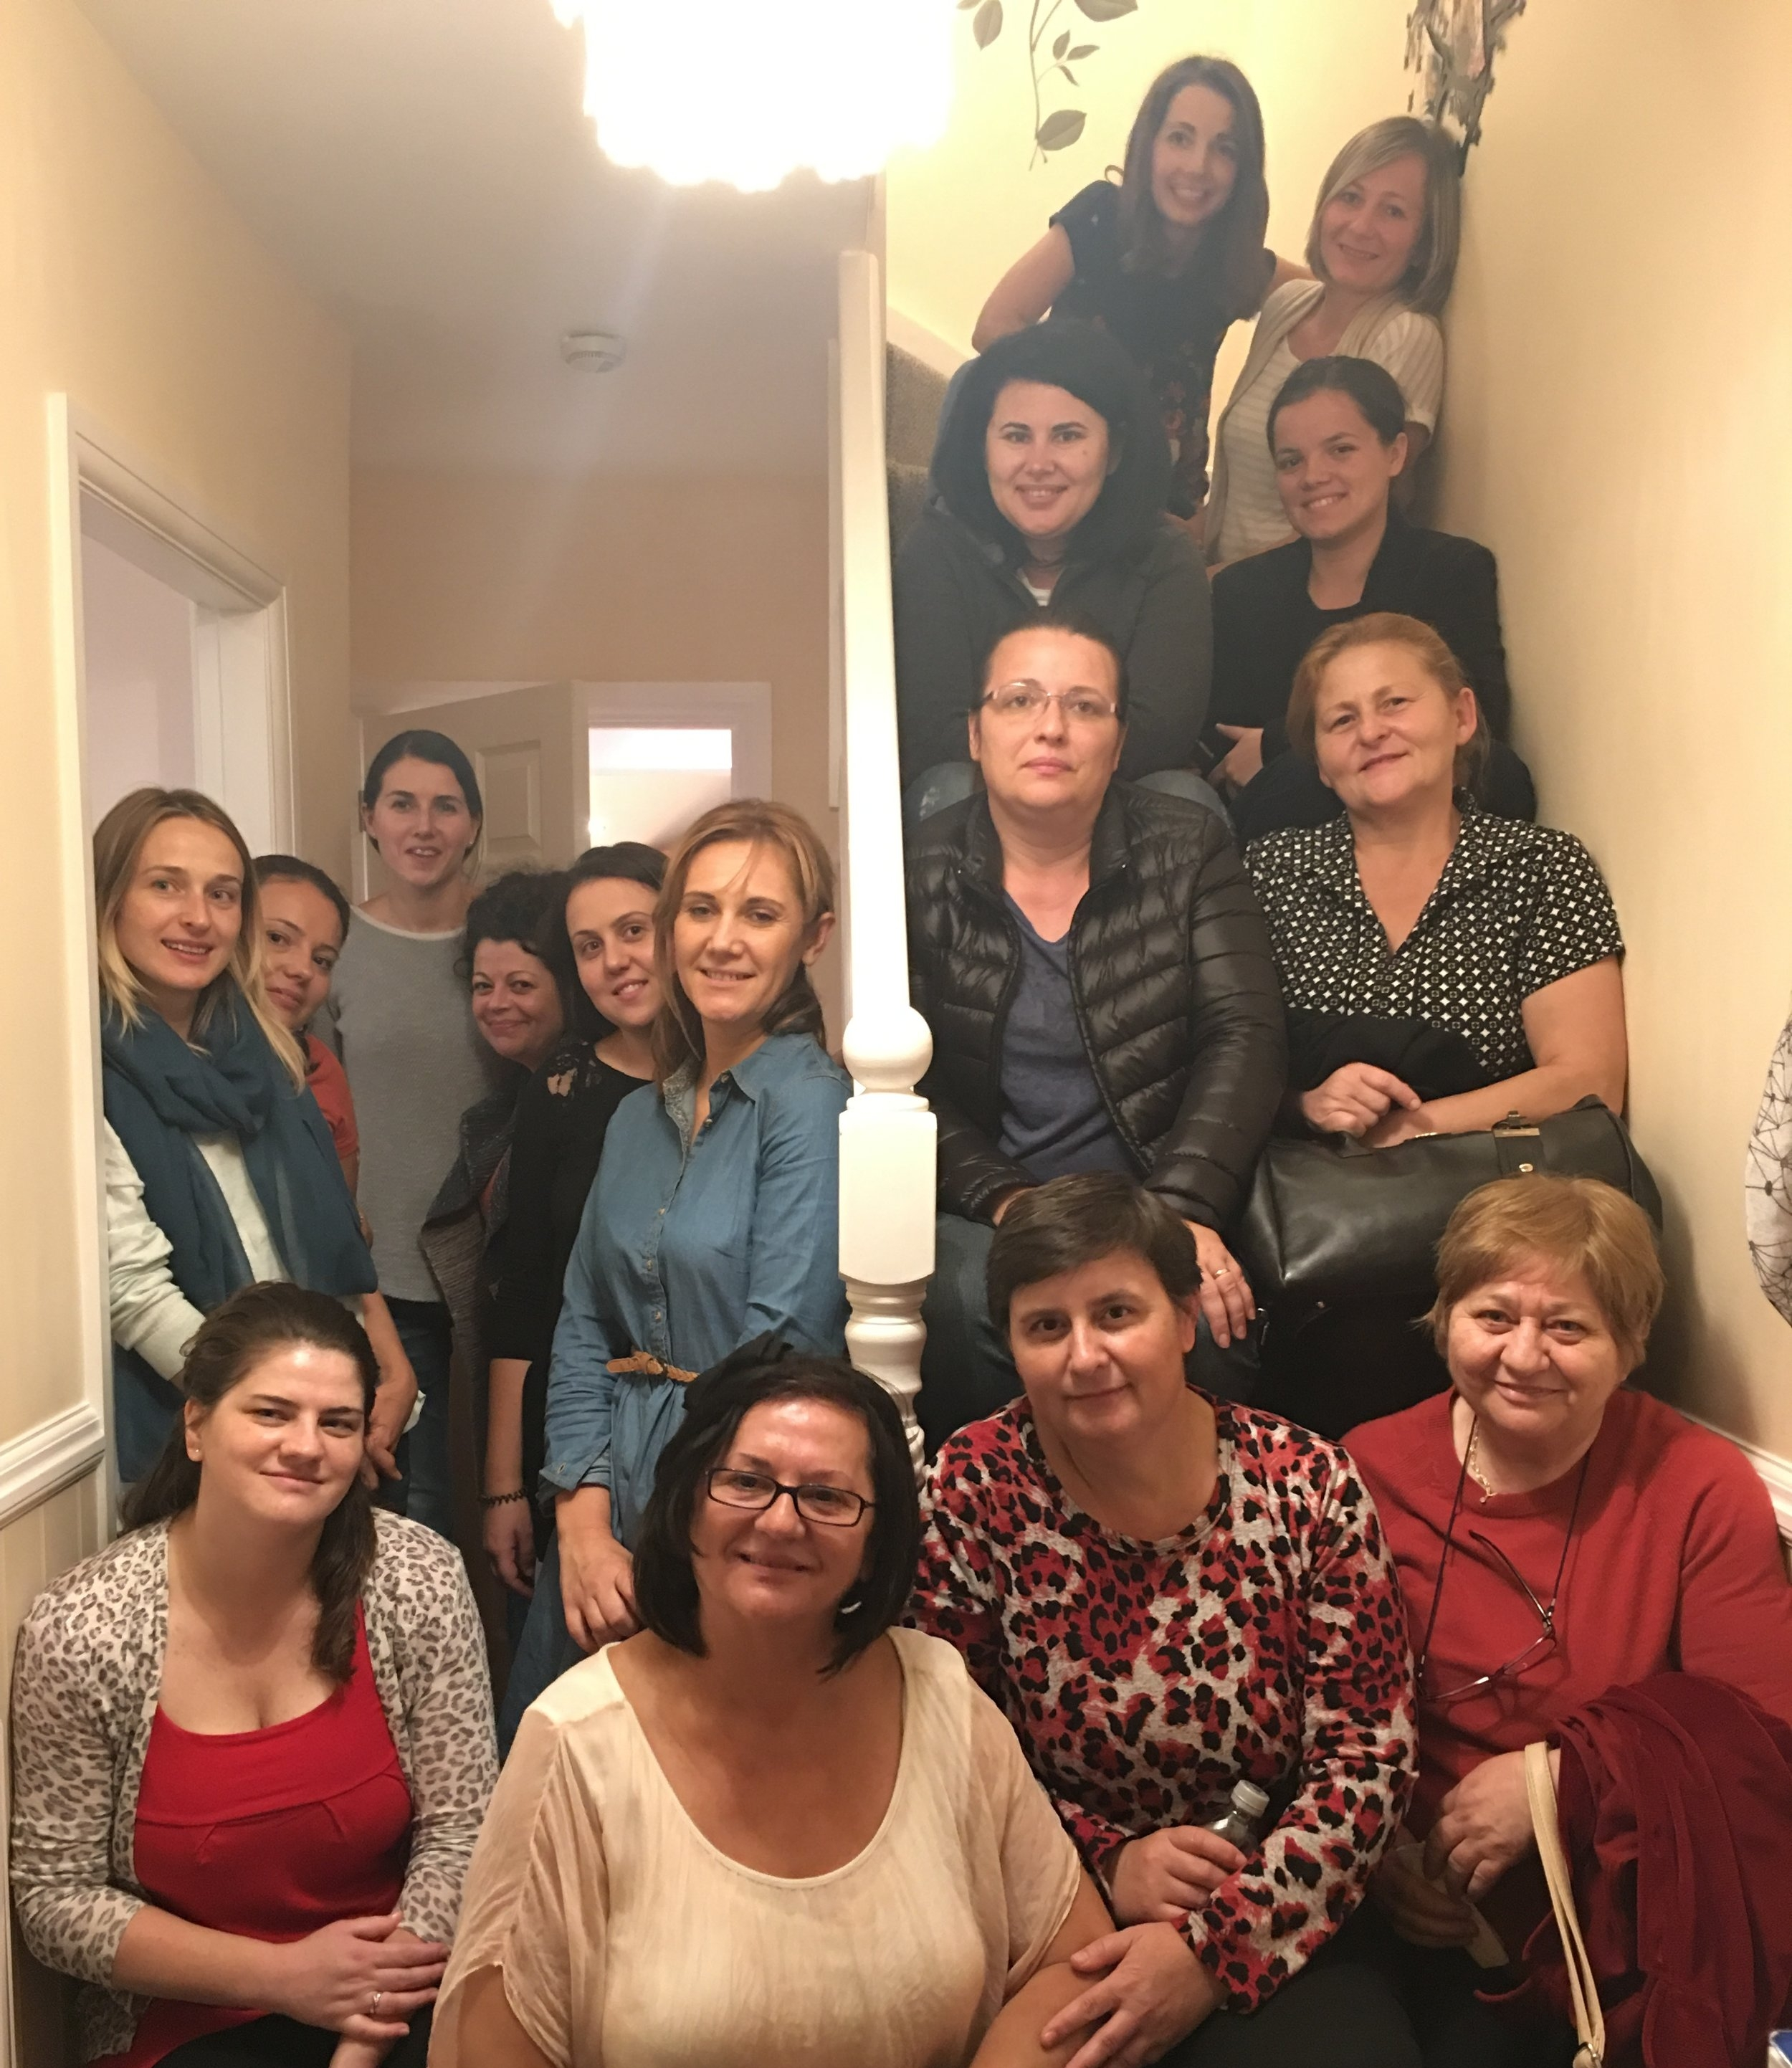 Fellowship with the ladies from Victory Romanian Baptist Church. What an honor and pleasure to meet these women.